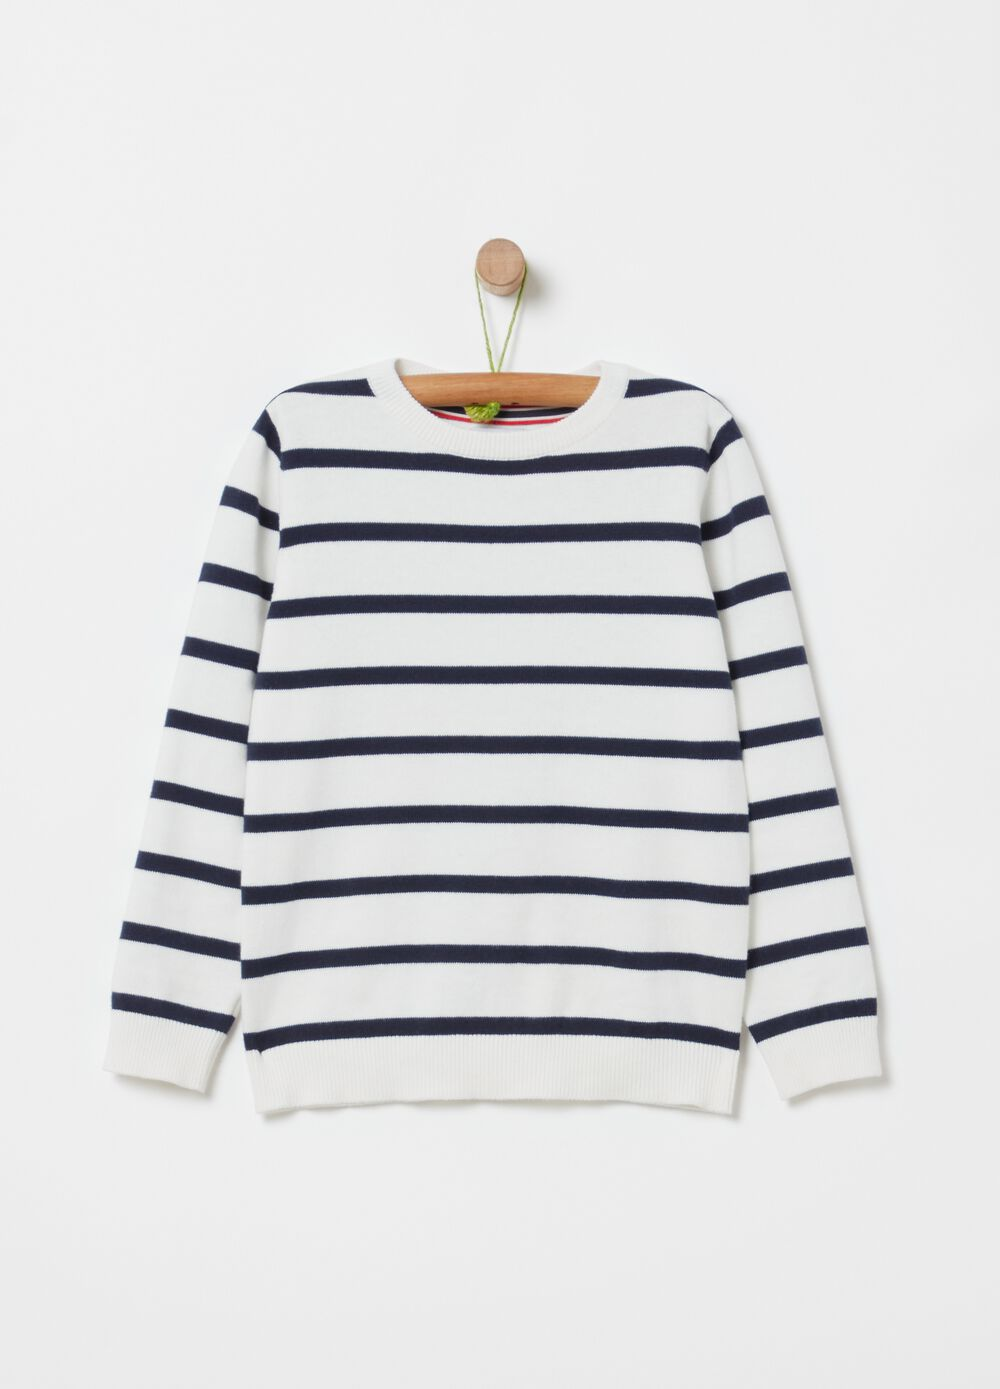 Top with striped pattern